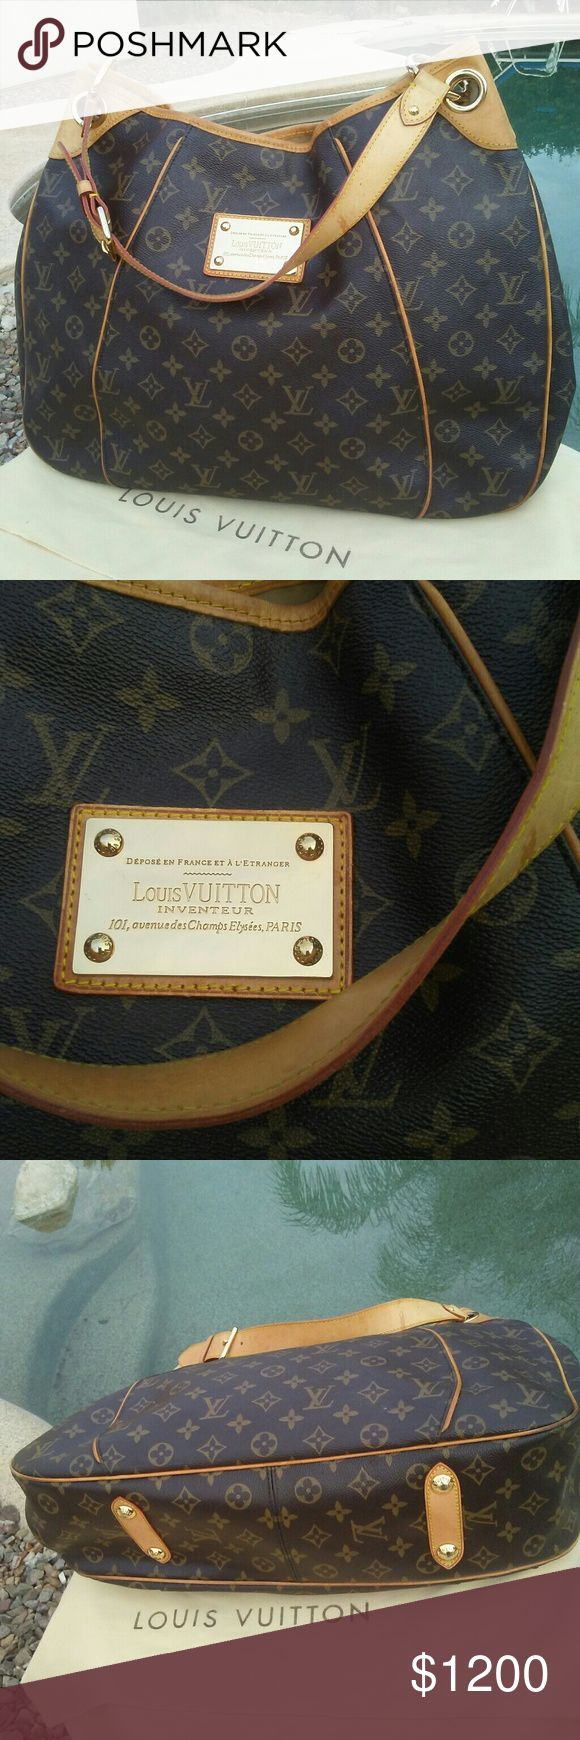 """Louis Vuitton Galliera big bag Louis Vuitton Canvas Galliera Hobo Bag  15.5""""L x 11.75""""H x 4.5"""" Bag is pre-owned and is kept in a LV dust bag . This bag is in great  used condition.  DESIGNER - Louis Vuitton  STYLE - Galliera PM in Monogram  HARDWARE - Gold Tone. One part of hardware inside is loose. Not noticeable. Check out please  the collage photo ➡   STRAP DROP - 7.5"""" (Achieved on the middle of three settings).  INTERIOR/EXTERIOR POCKETS  Interior lining wear, some cracks -  see pics…"""